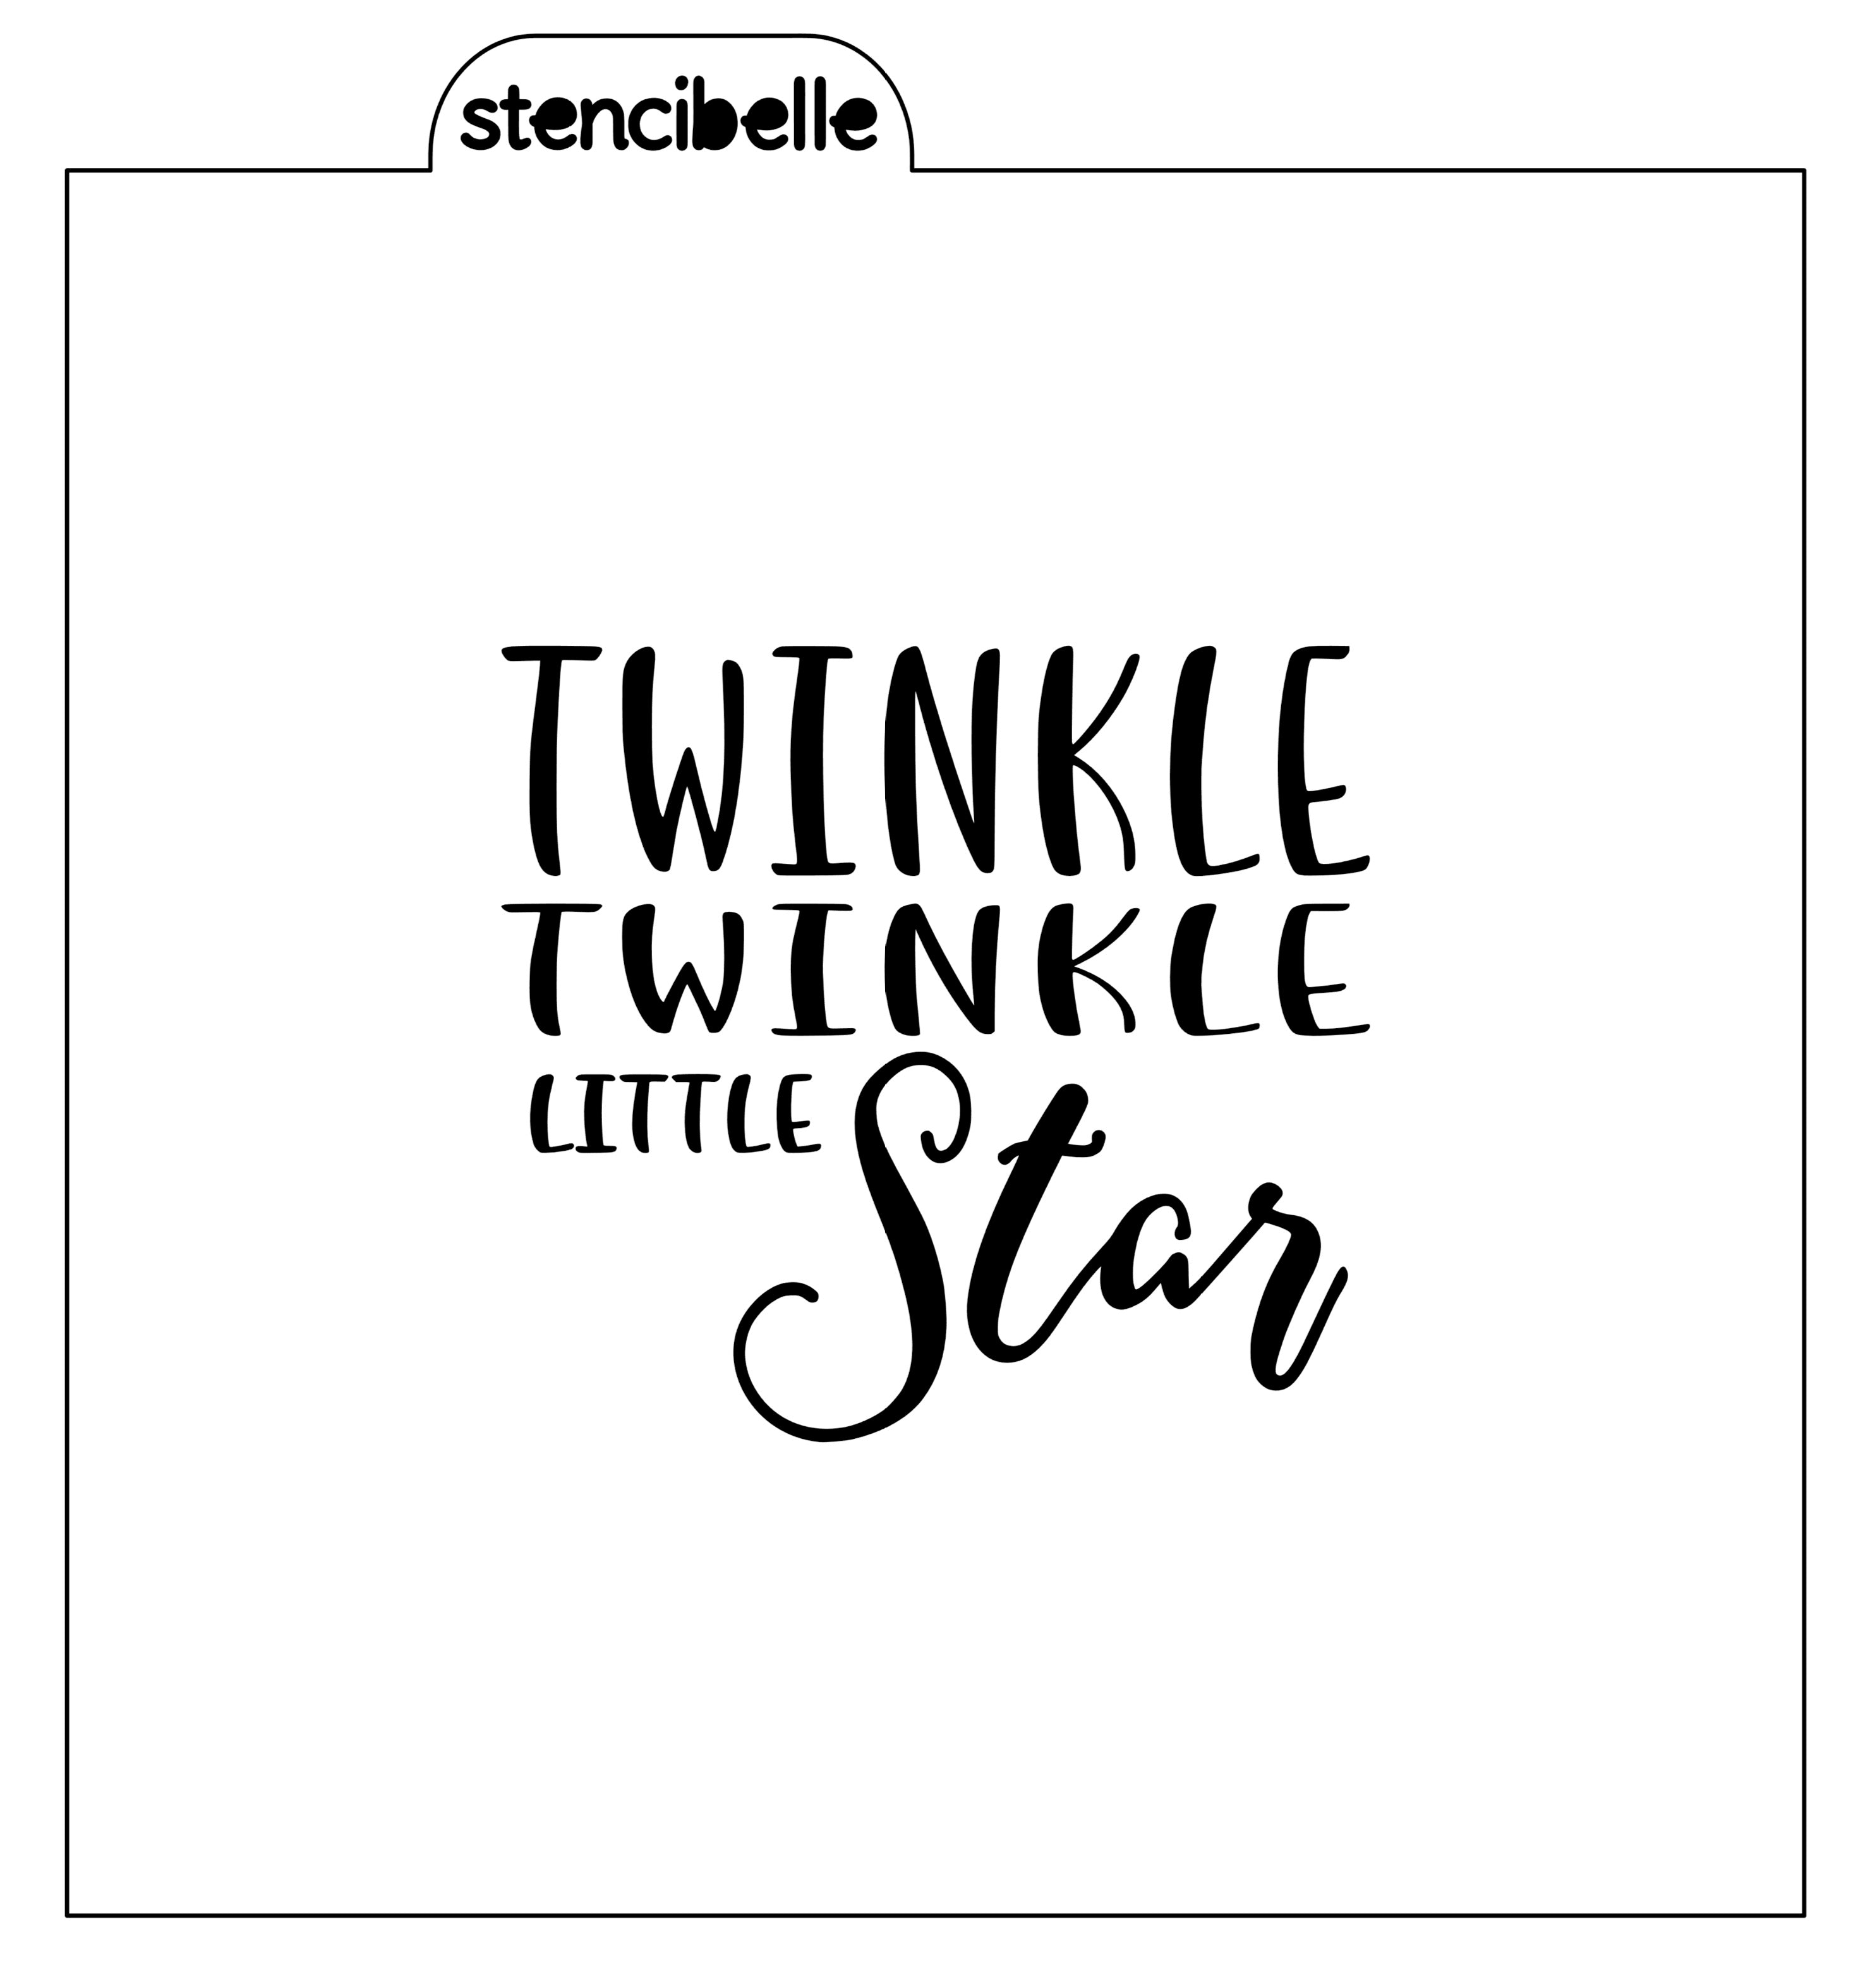 cf64a8d09 ... Twinkle Twinkle Little Star Stencil - Words - Available in 2 sizes